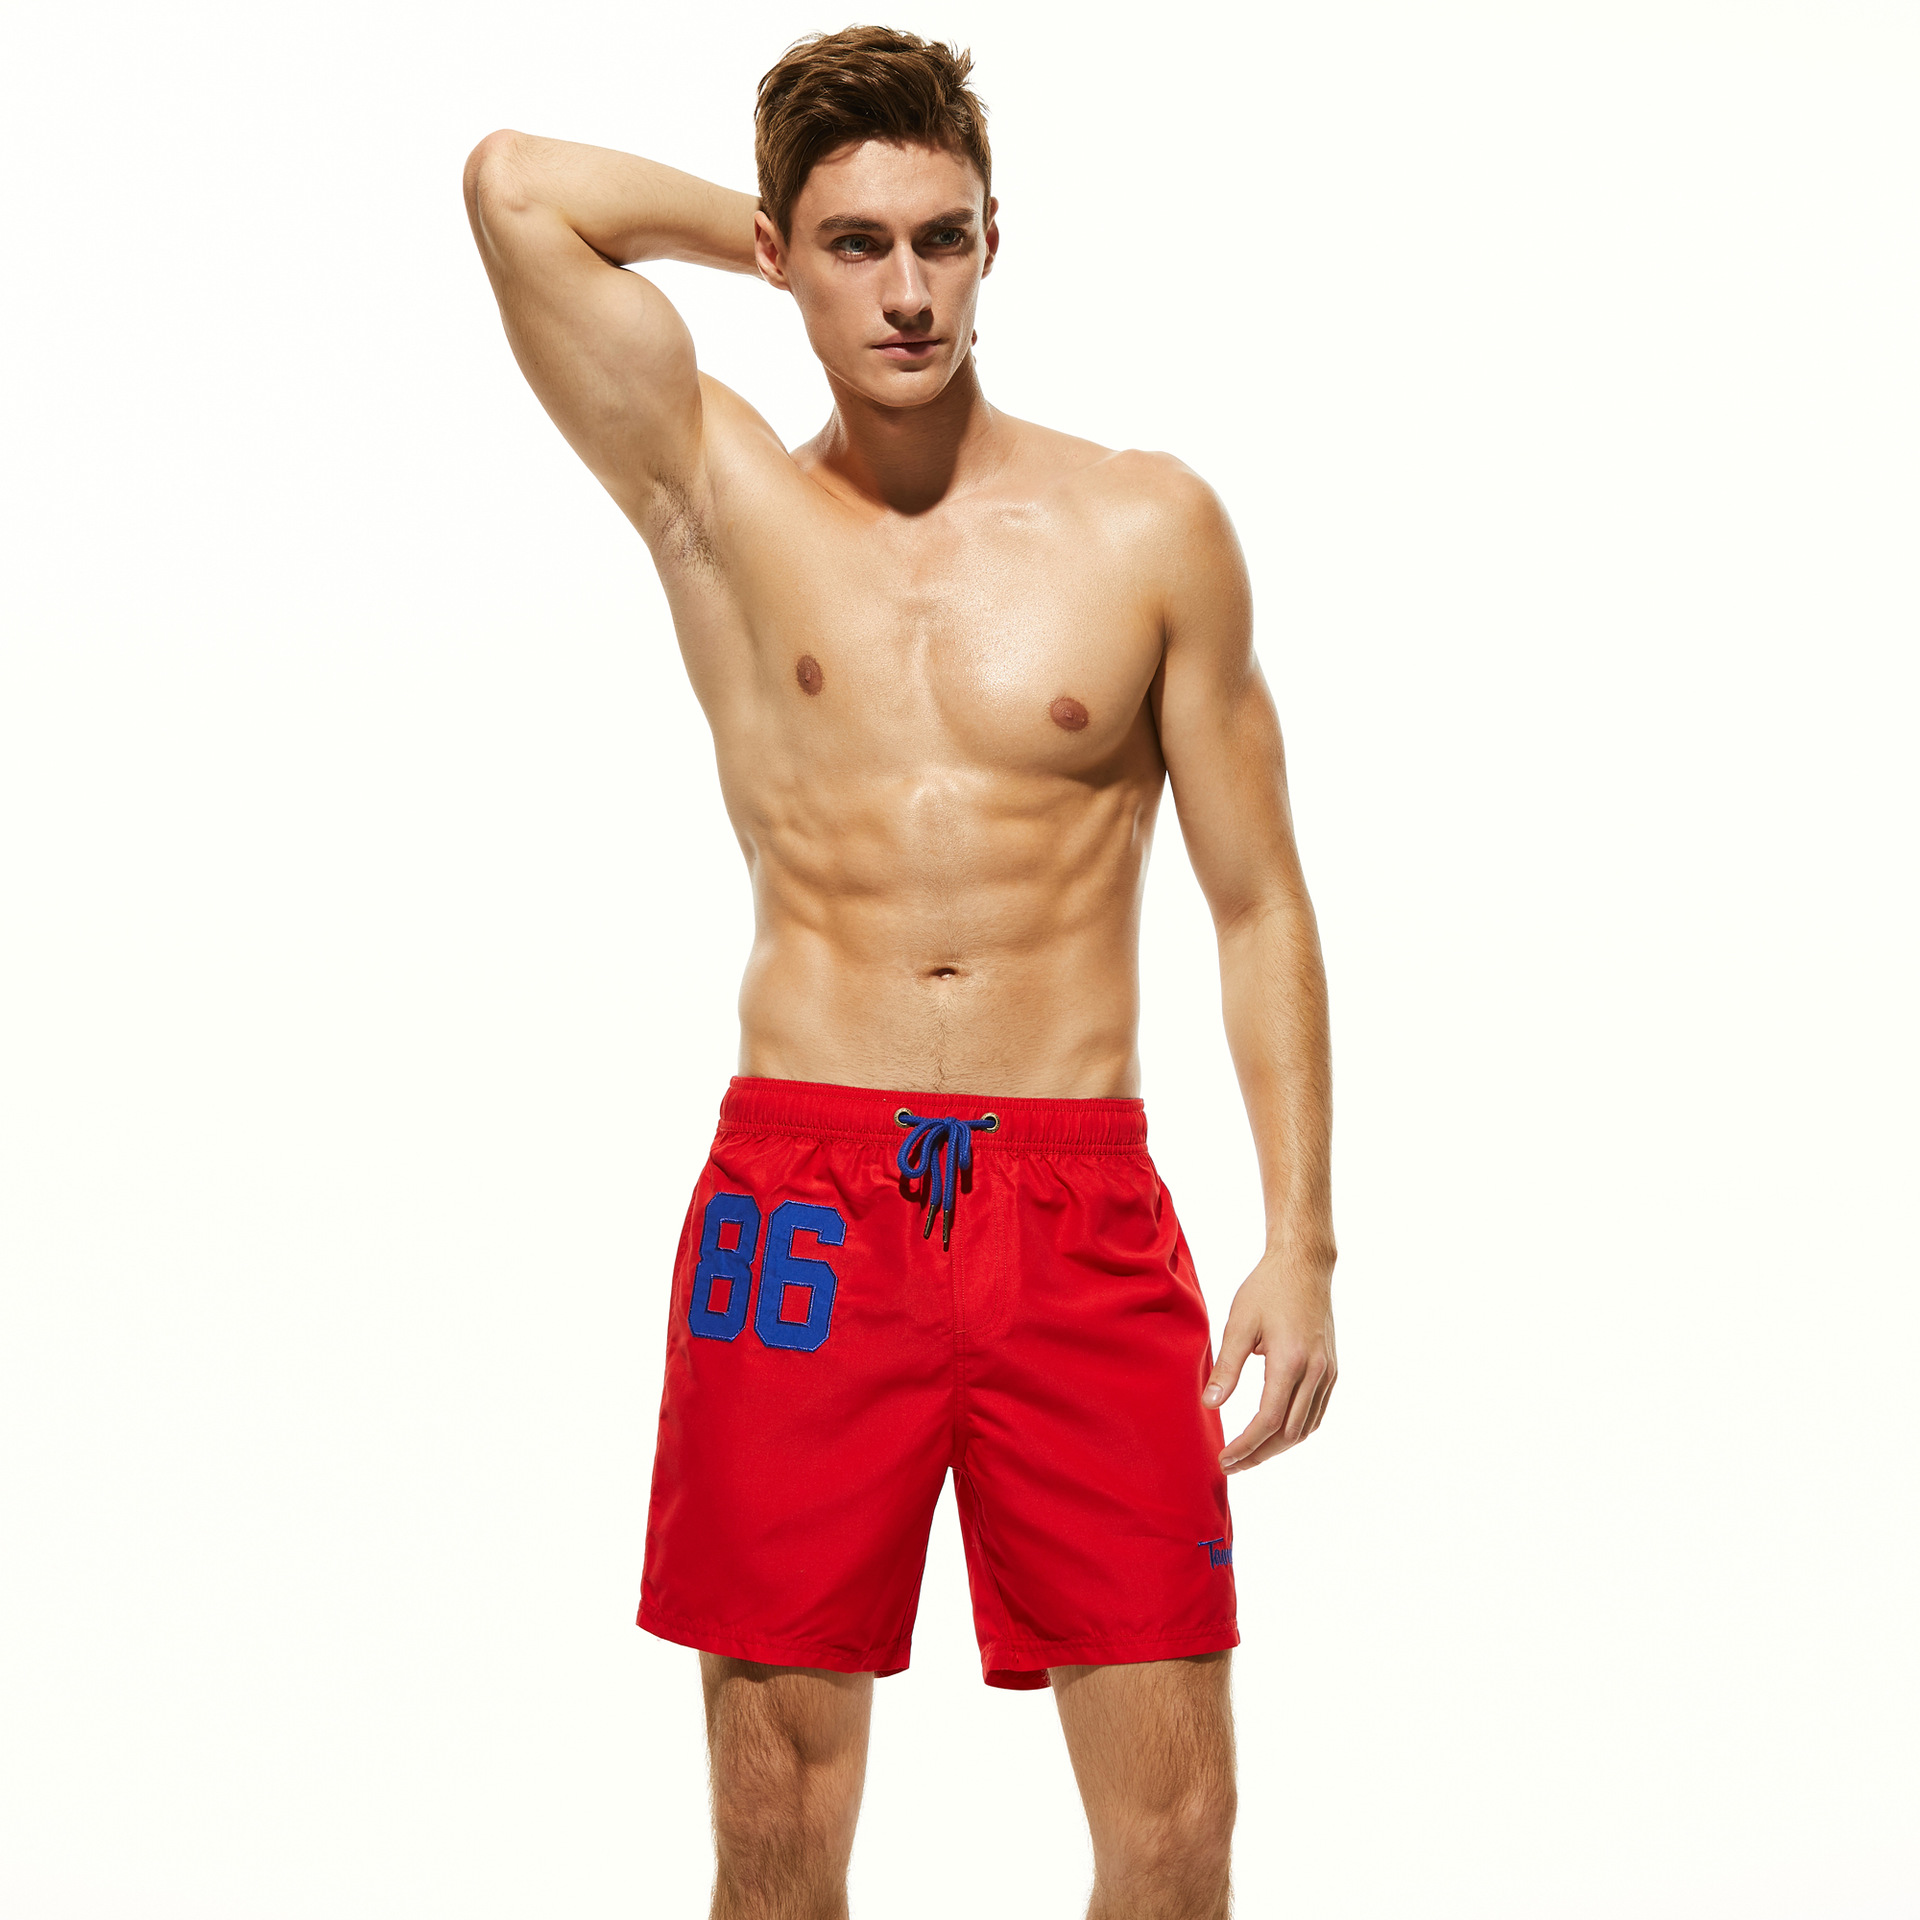 For Tauwell Summer New Style MEN'S Beach Pants Solid Color Sports Casual Shorts Quick-Dry Fashion 3 Pants